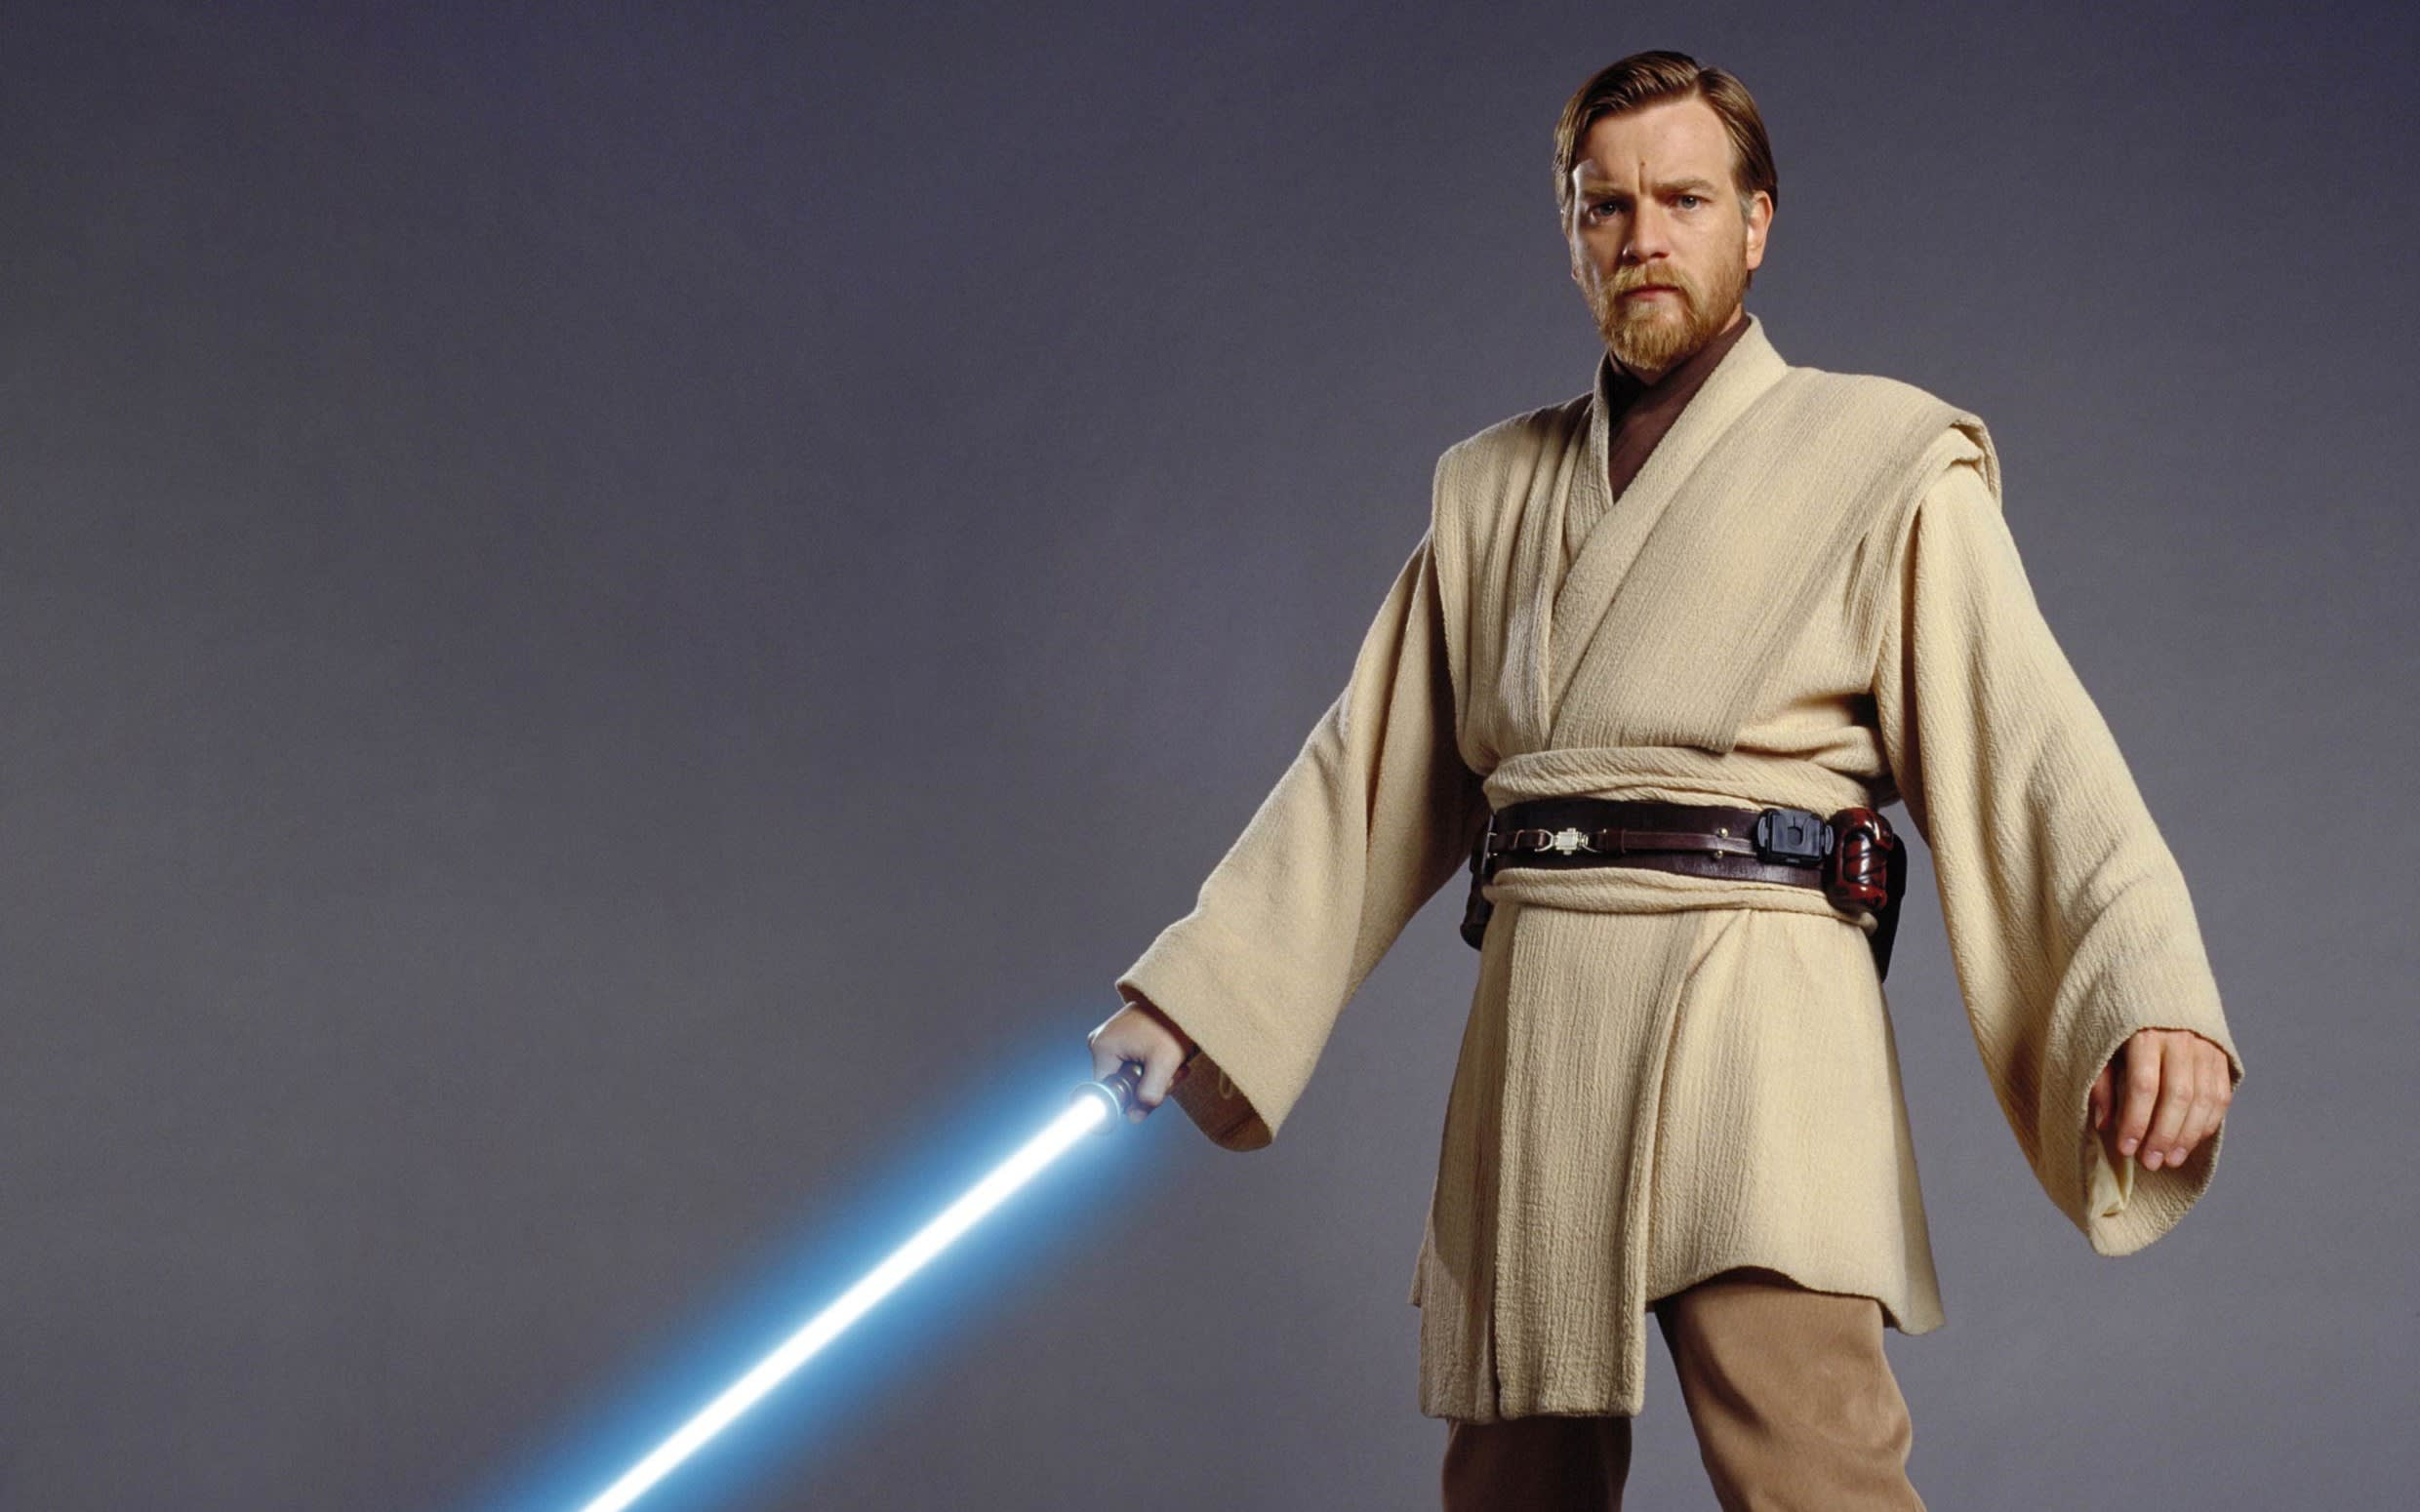 Obi Wan Kenobi S 15 Most Iconic Quotes From Star Wars